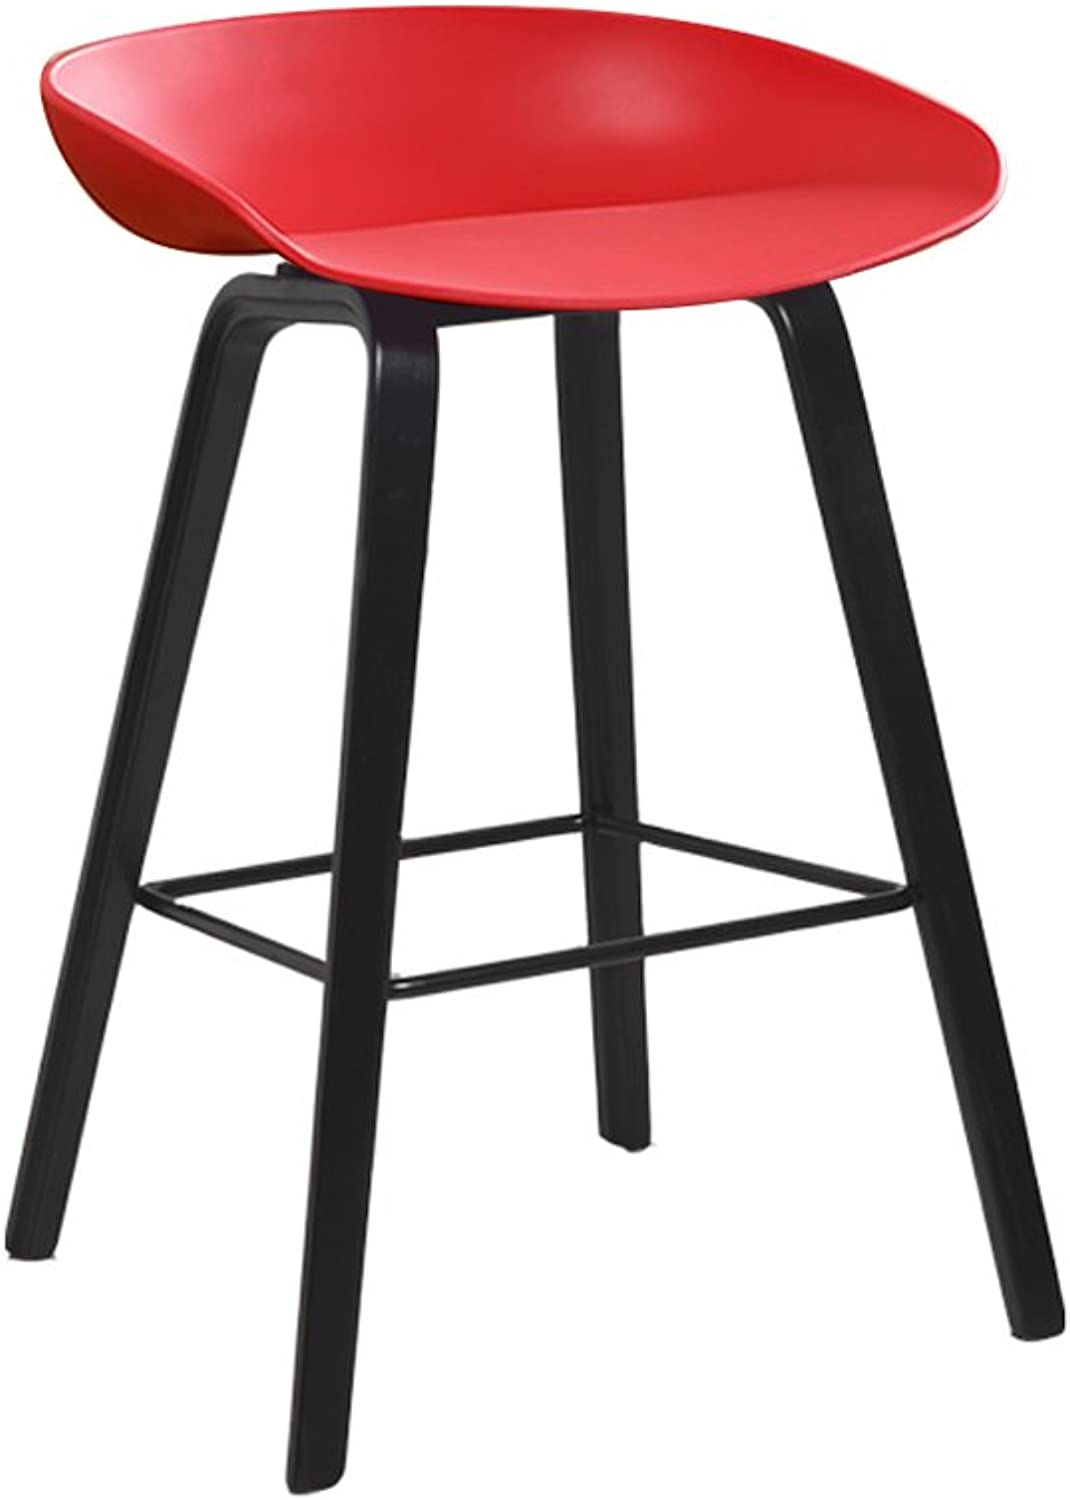 Ghjkl Bamboo Pole Wooden bar Chair Creative bar Stool Modern Minimalist bar Stool high Stool Home high stoolSeat Height 65cm -by TIANTA (color   RED)